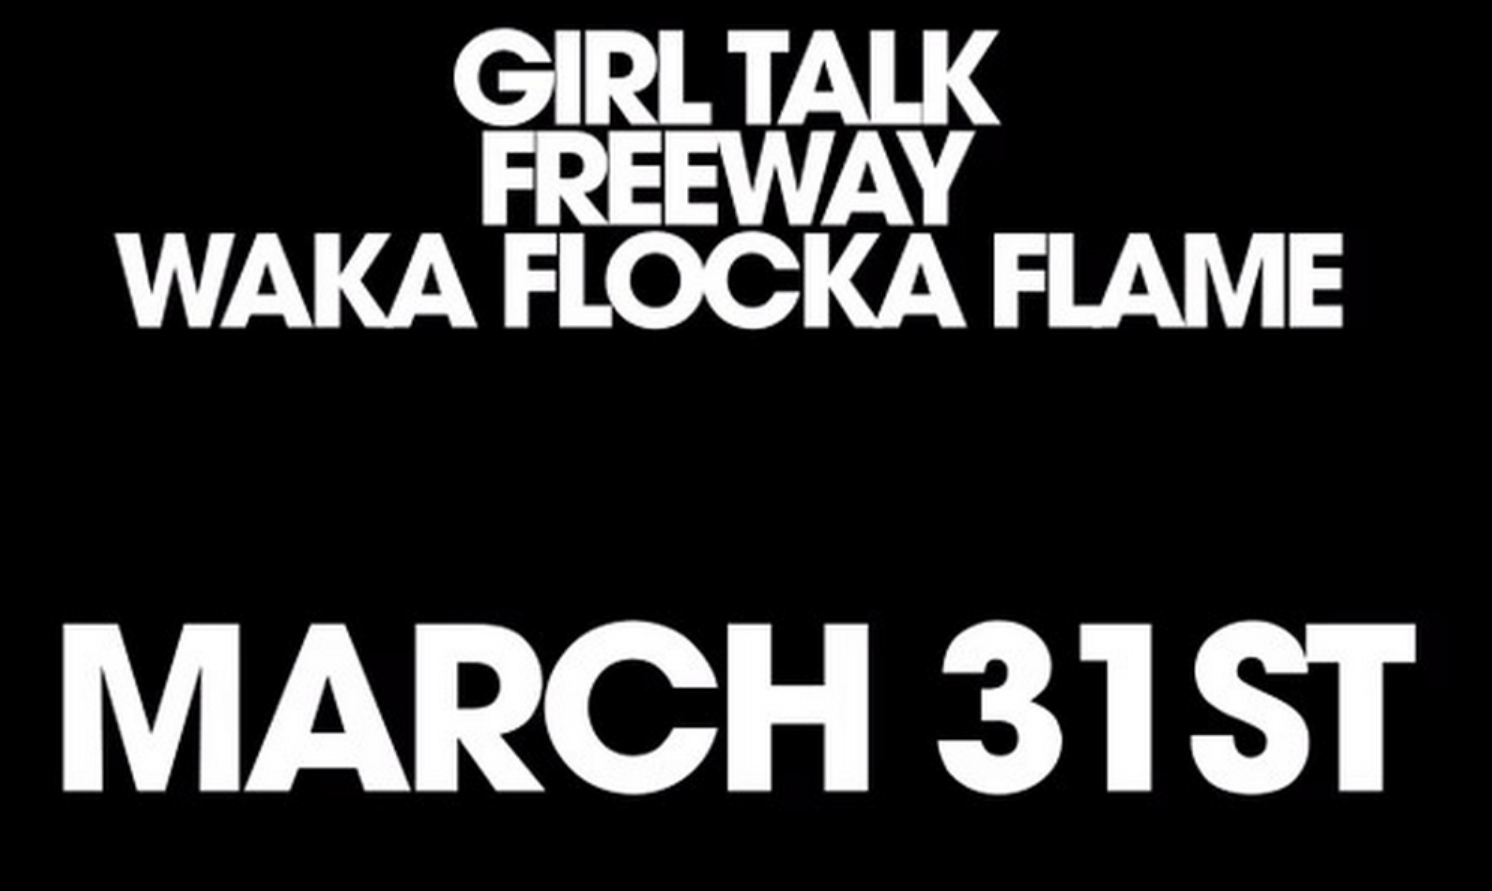 "New Girl Talk April 8th! New Video ""Tolerated"" out March 31st"